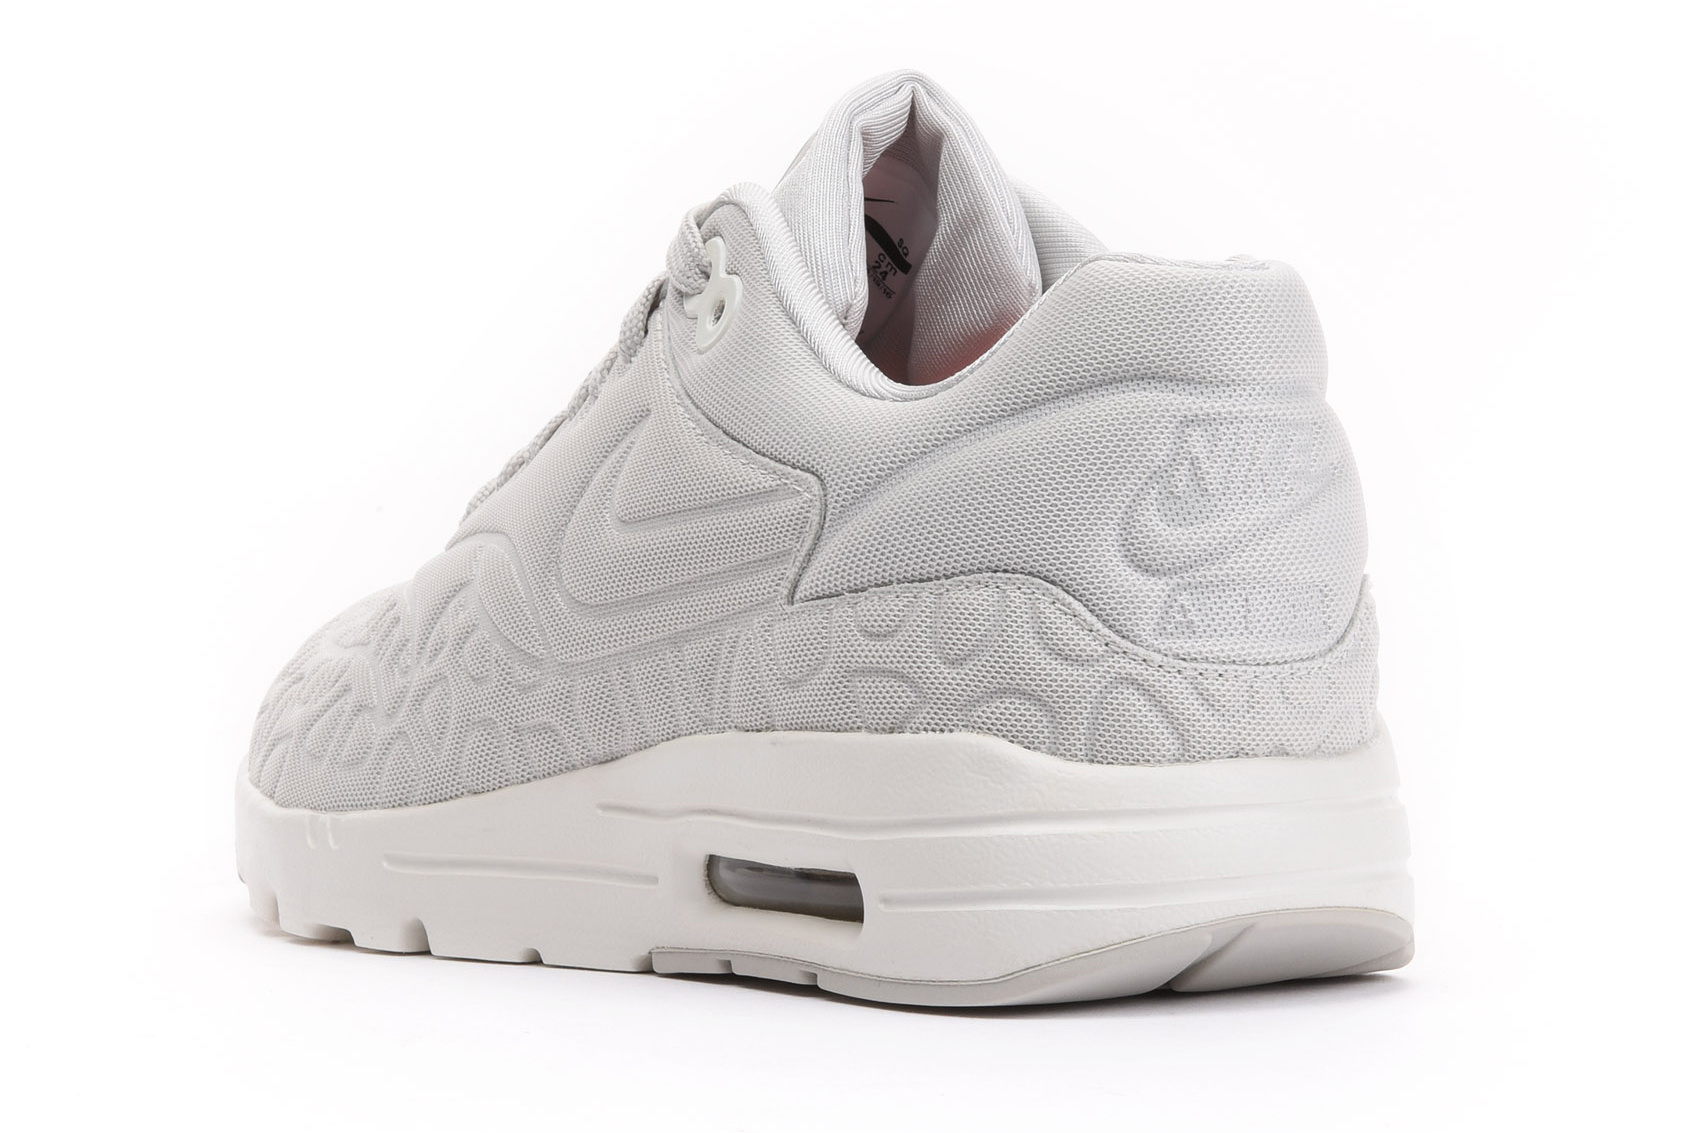 nike-air-max-1-ultra-plush-light-bone-2.jpg